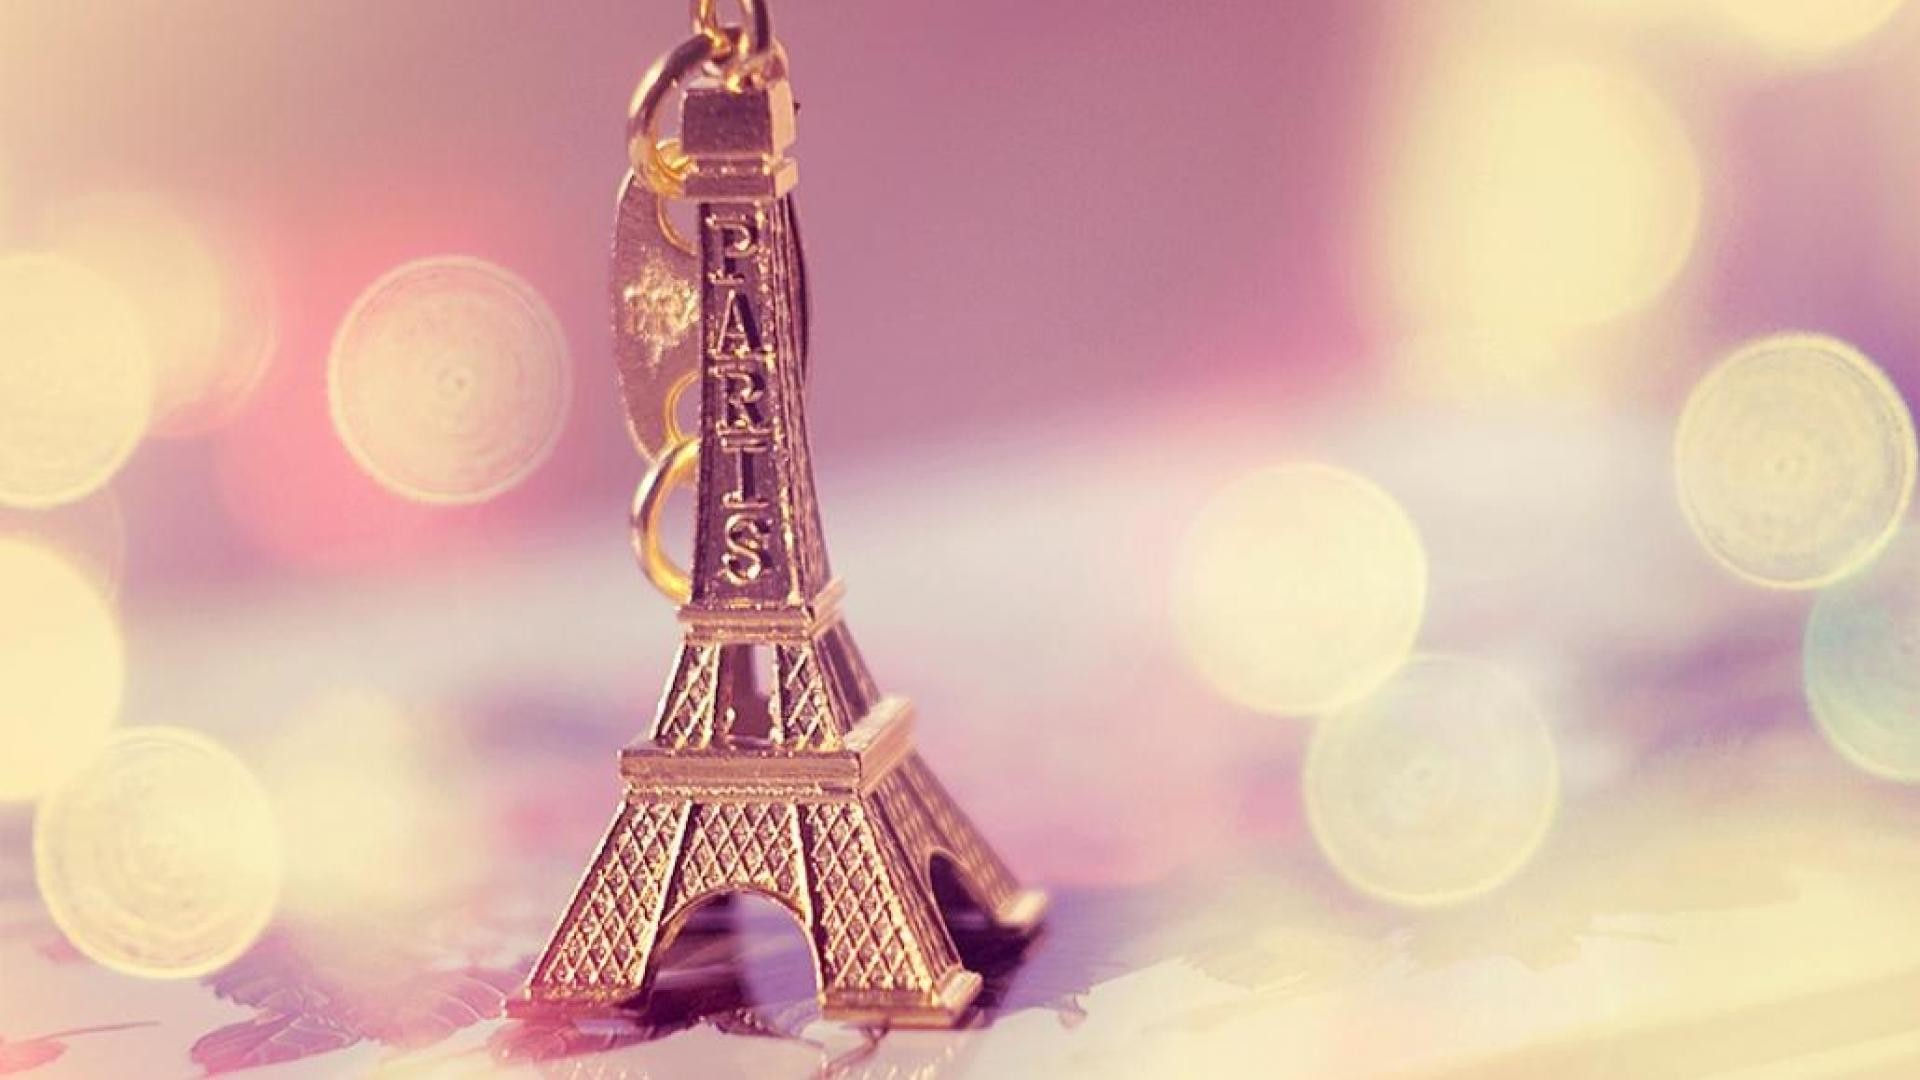 Cute Paris Wallpaper 72 Images